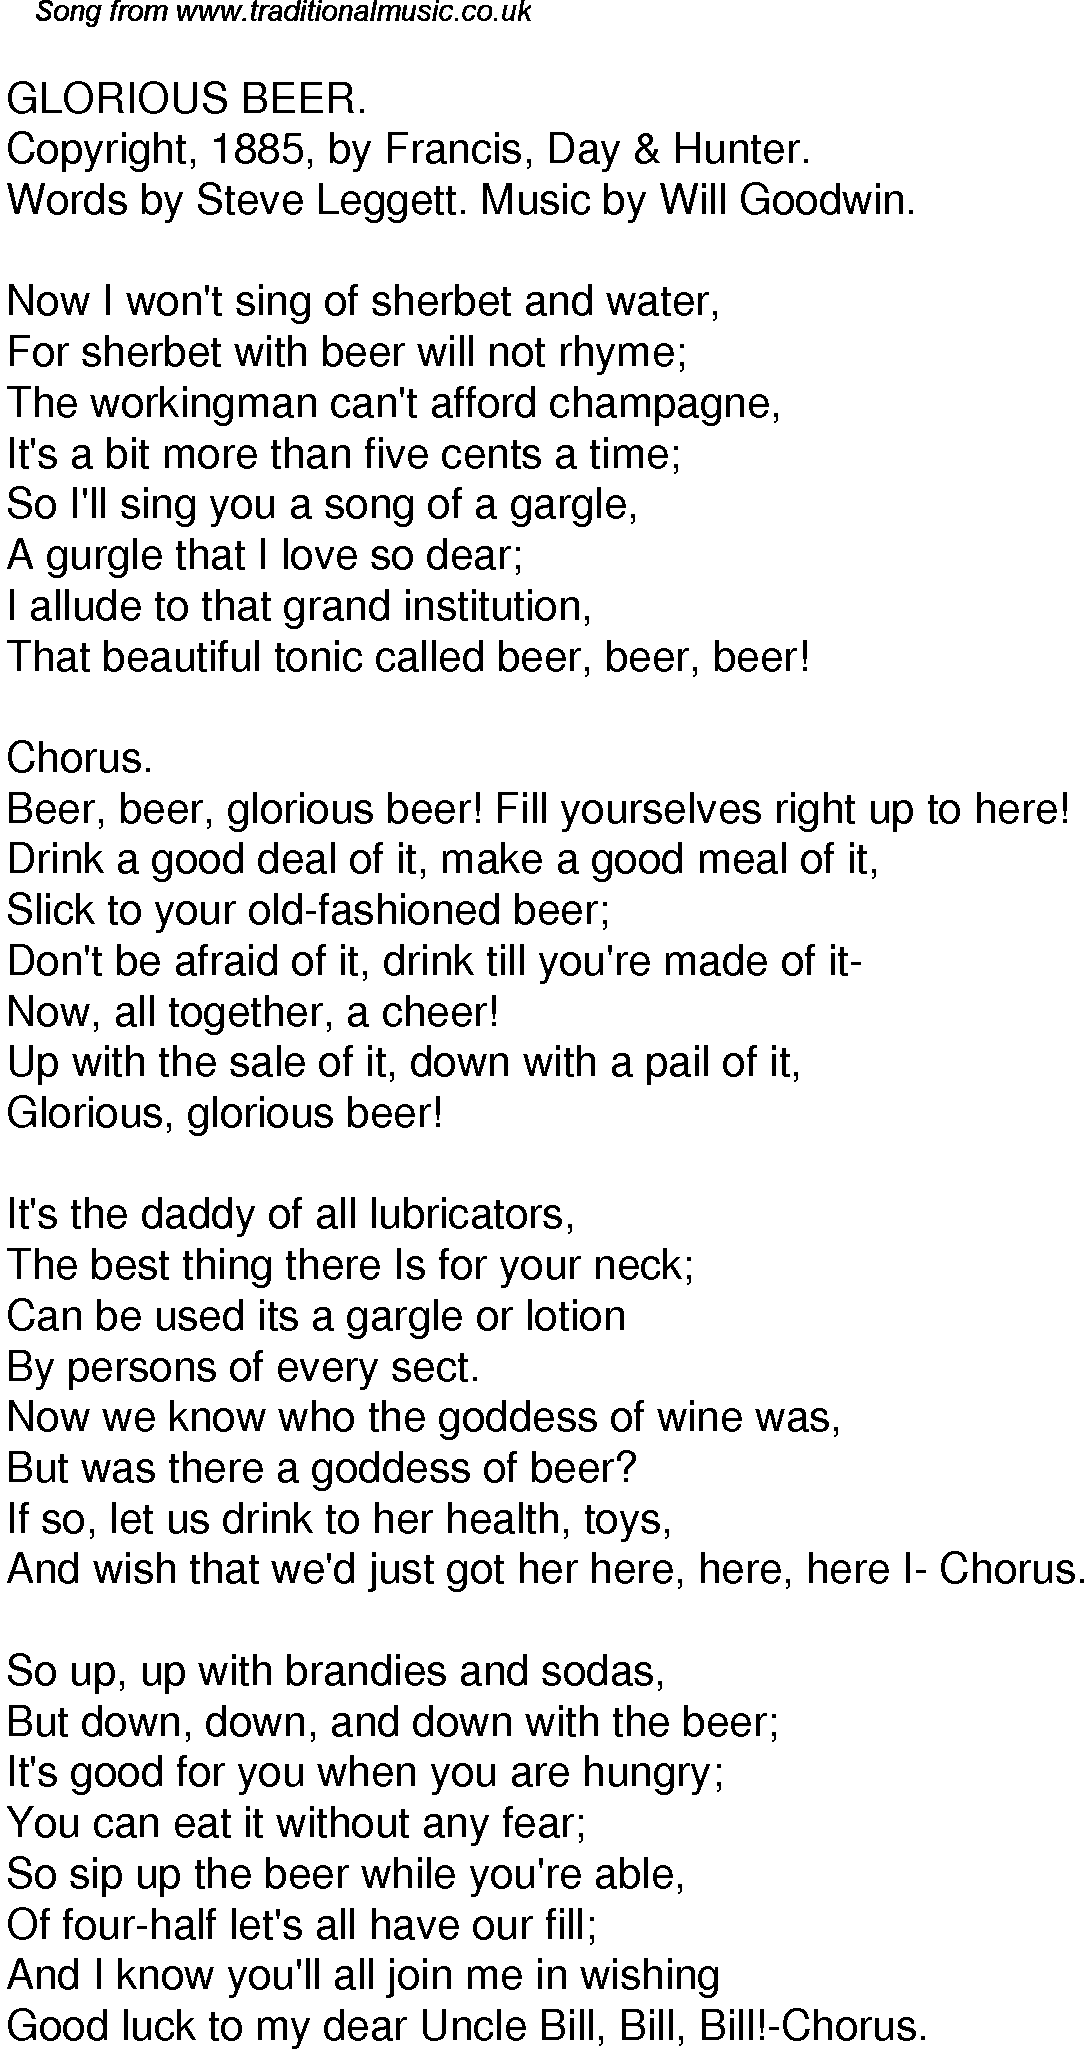 Old Time Song Lyrics For 49 Glorious Beer